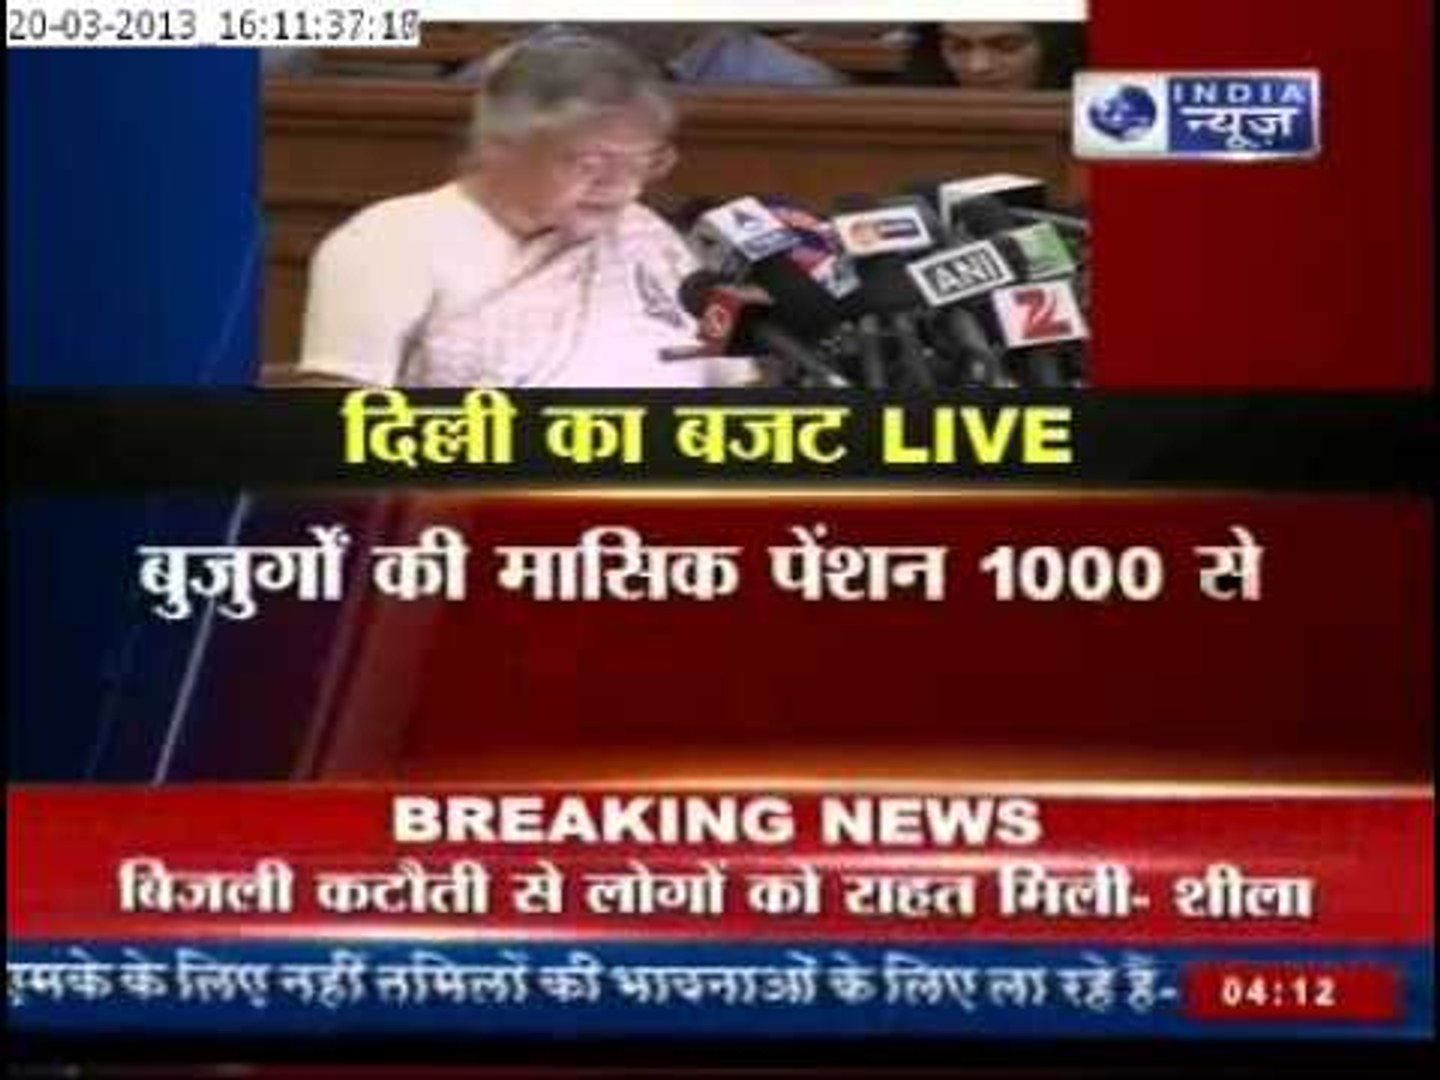 India News: The ornamented budget